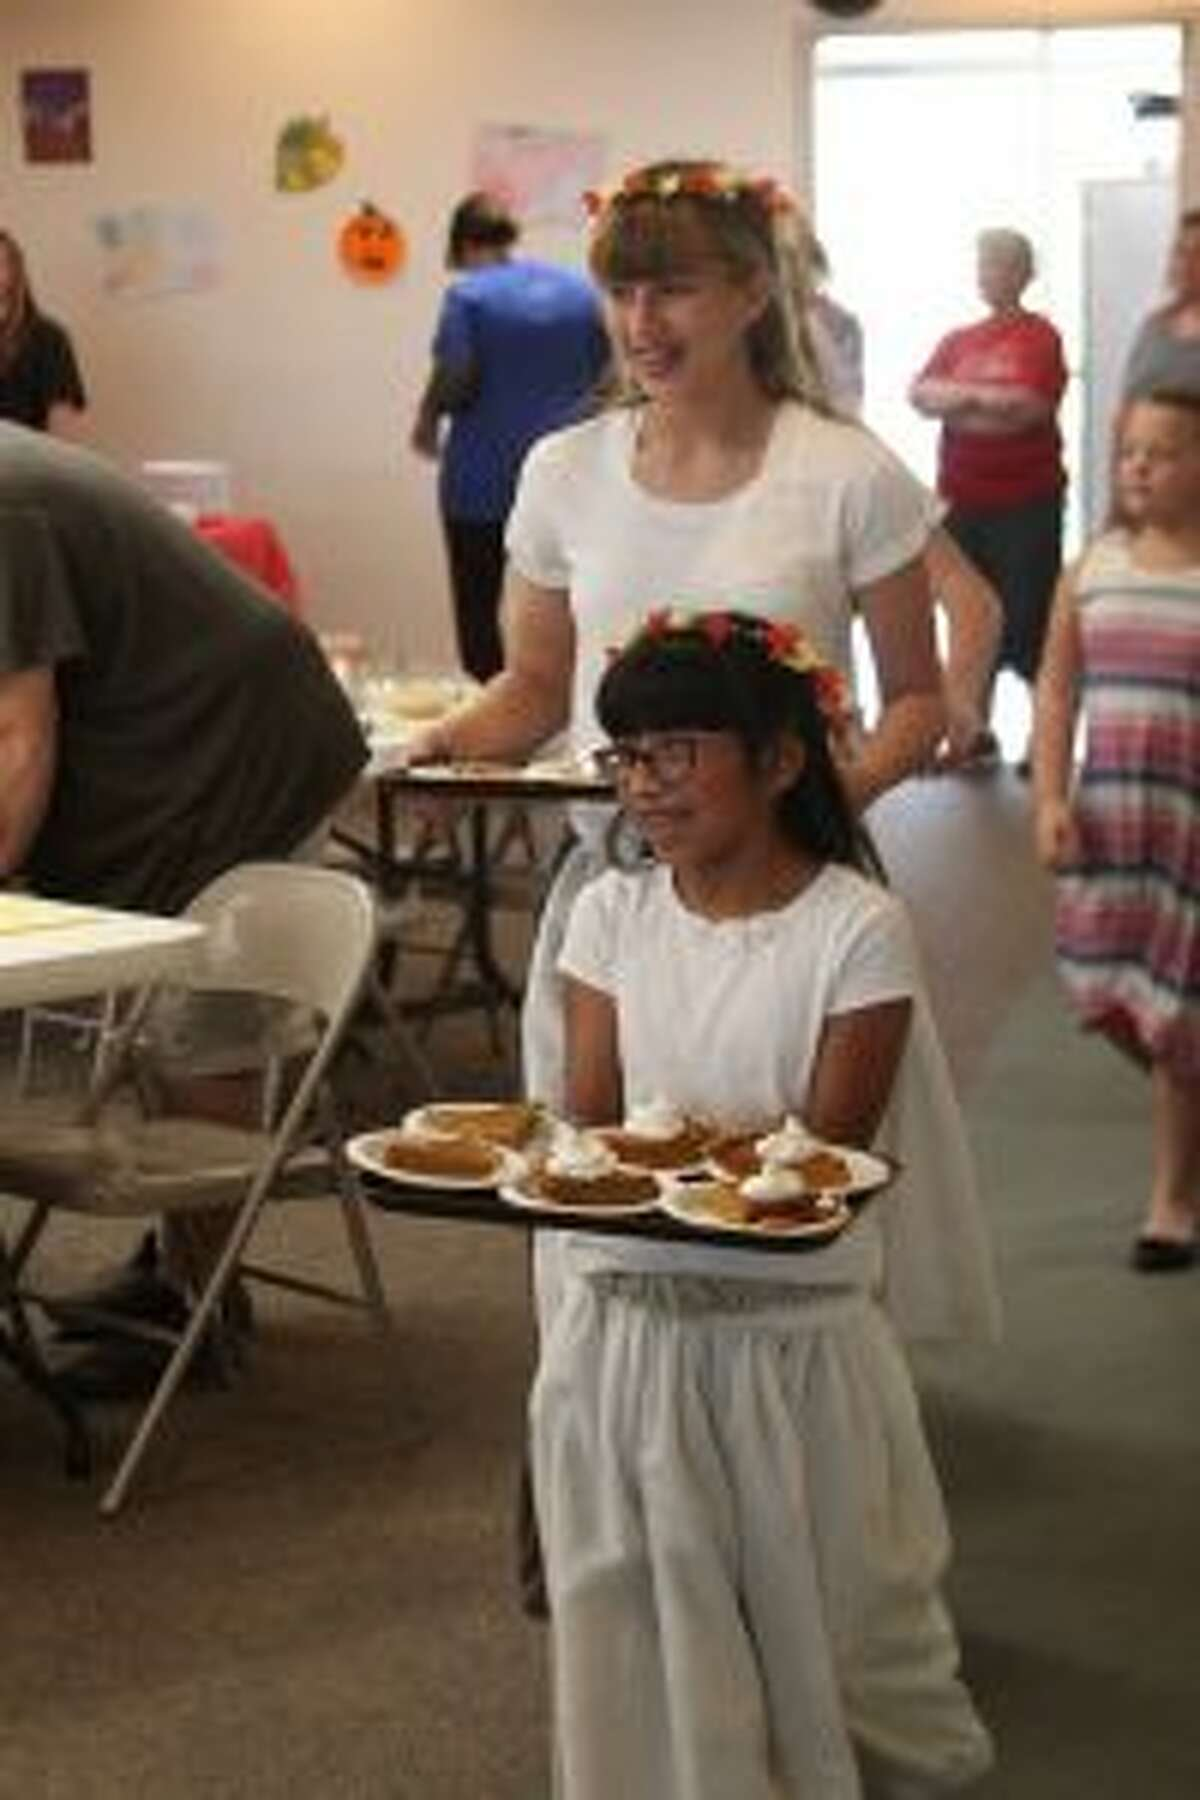 Fifth- through eighth-grade students at Trinity Lutheran Church and School help serve dessert during Saturday's Harvestfest Dinner. The annual fundraiser has taken place for more than 20 years, and helps the school's Parent-Teacher League provide funds and support for school programs.